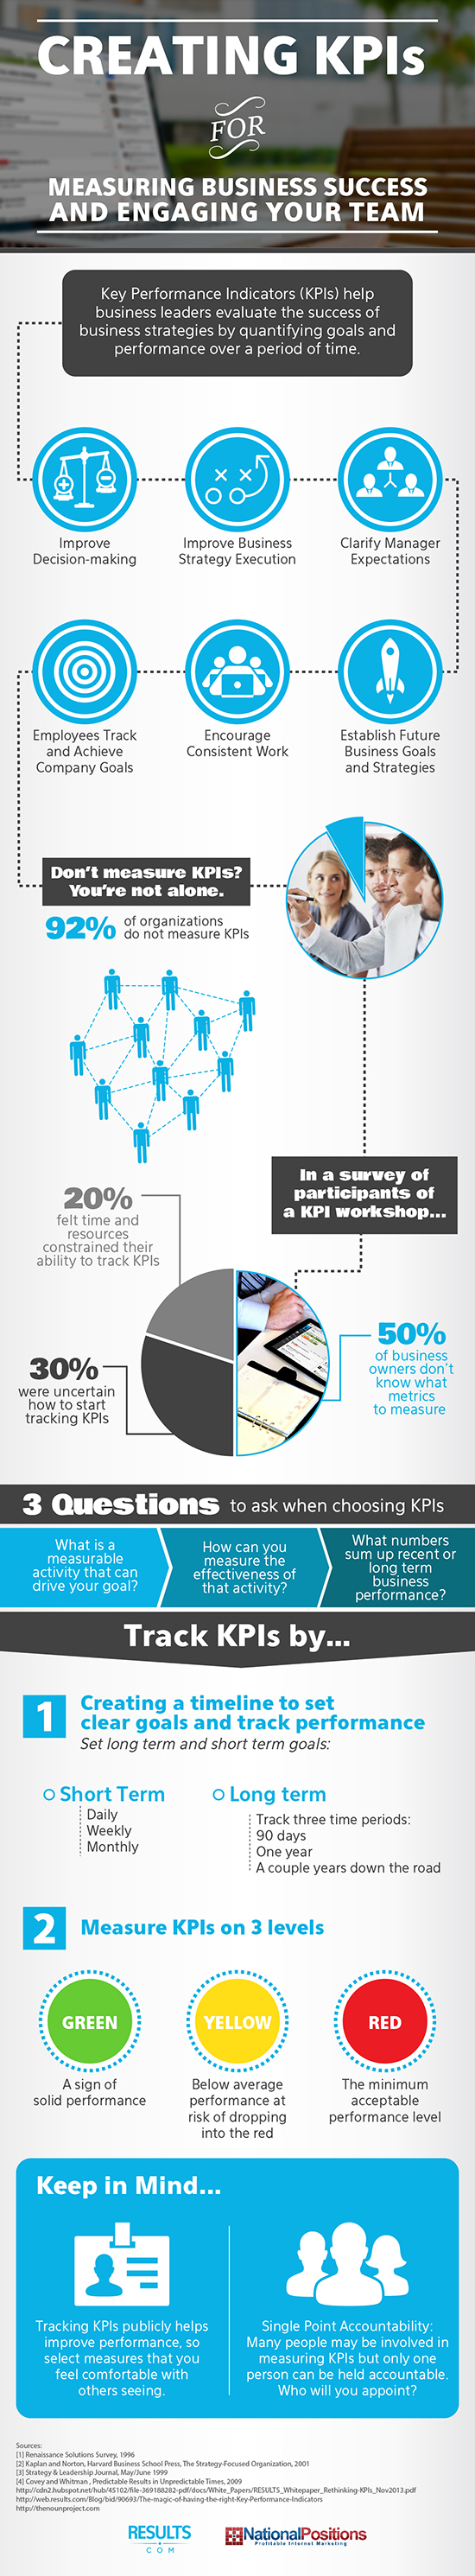 RESULTS.com Key Performance Indicators infographic